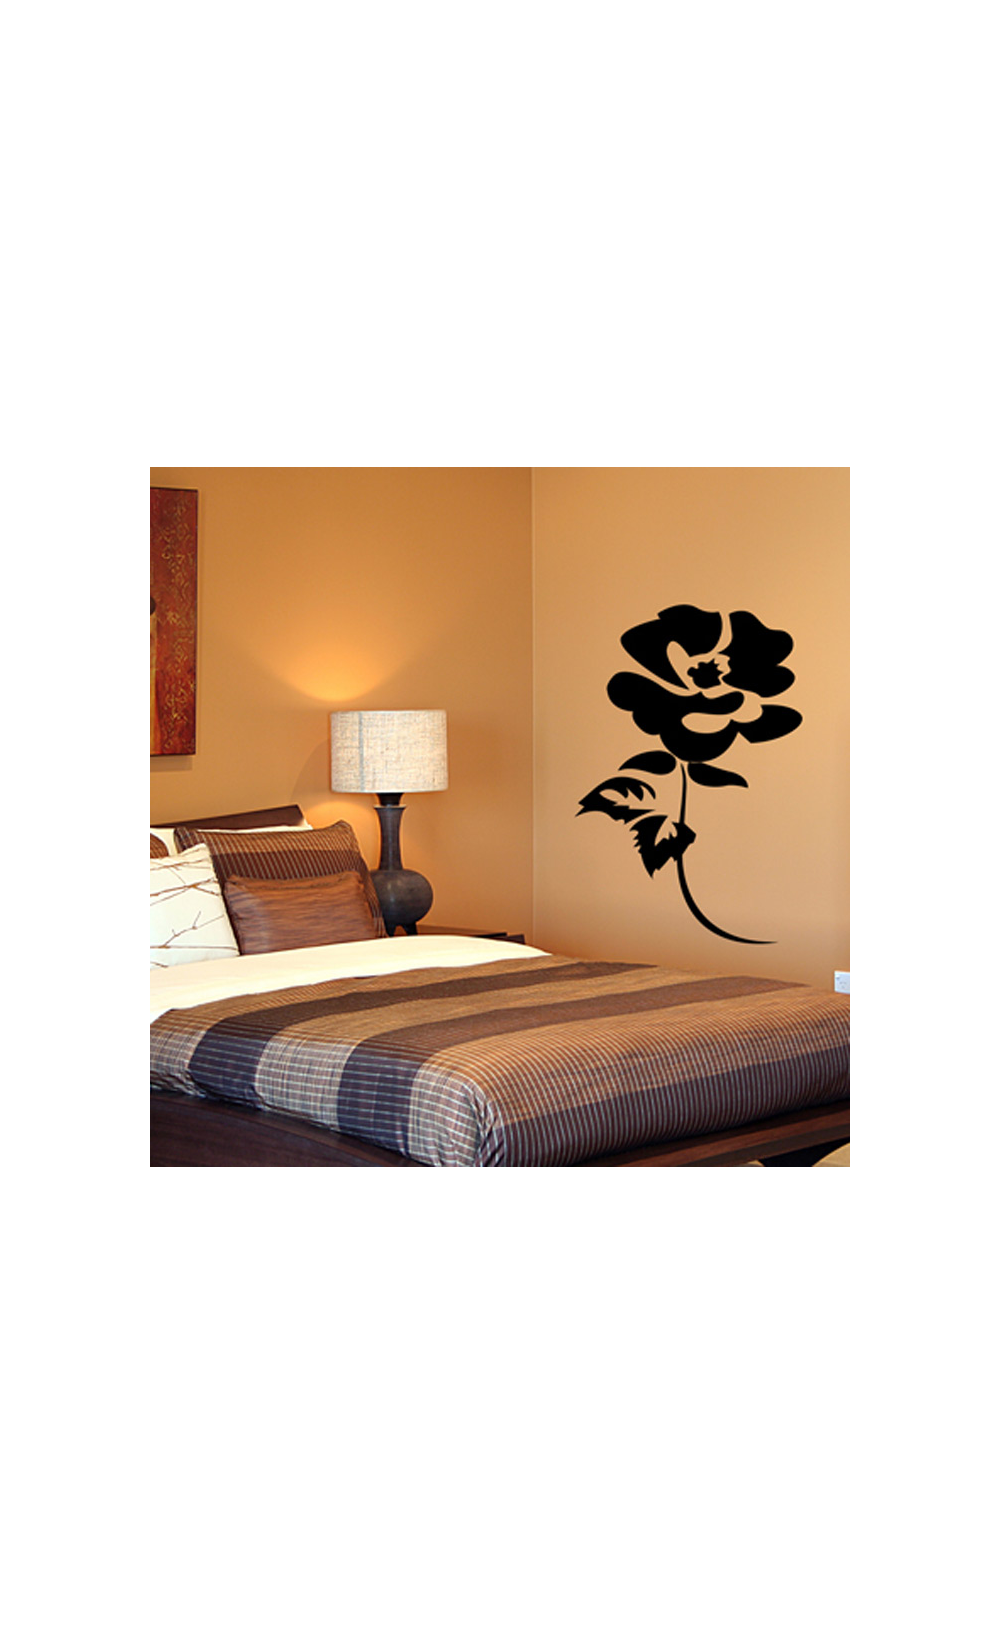 sticker mural pour d corer son int rieur petit prix mod le rose. Black Bedroom Furniture Sets. Home Design Ideas